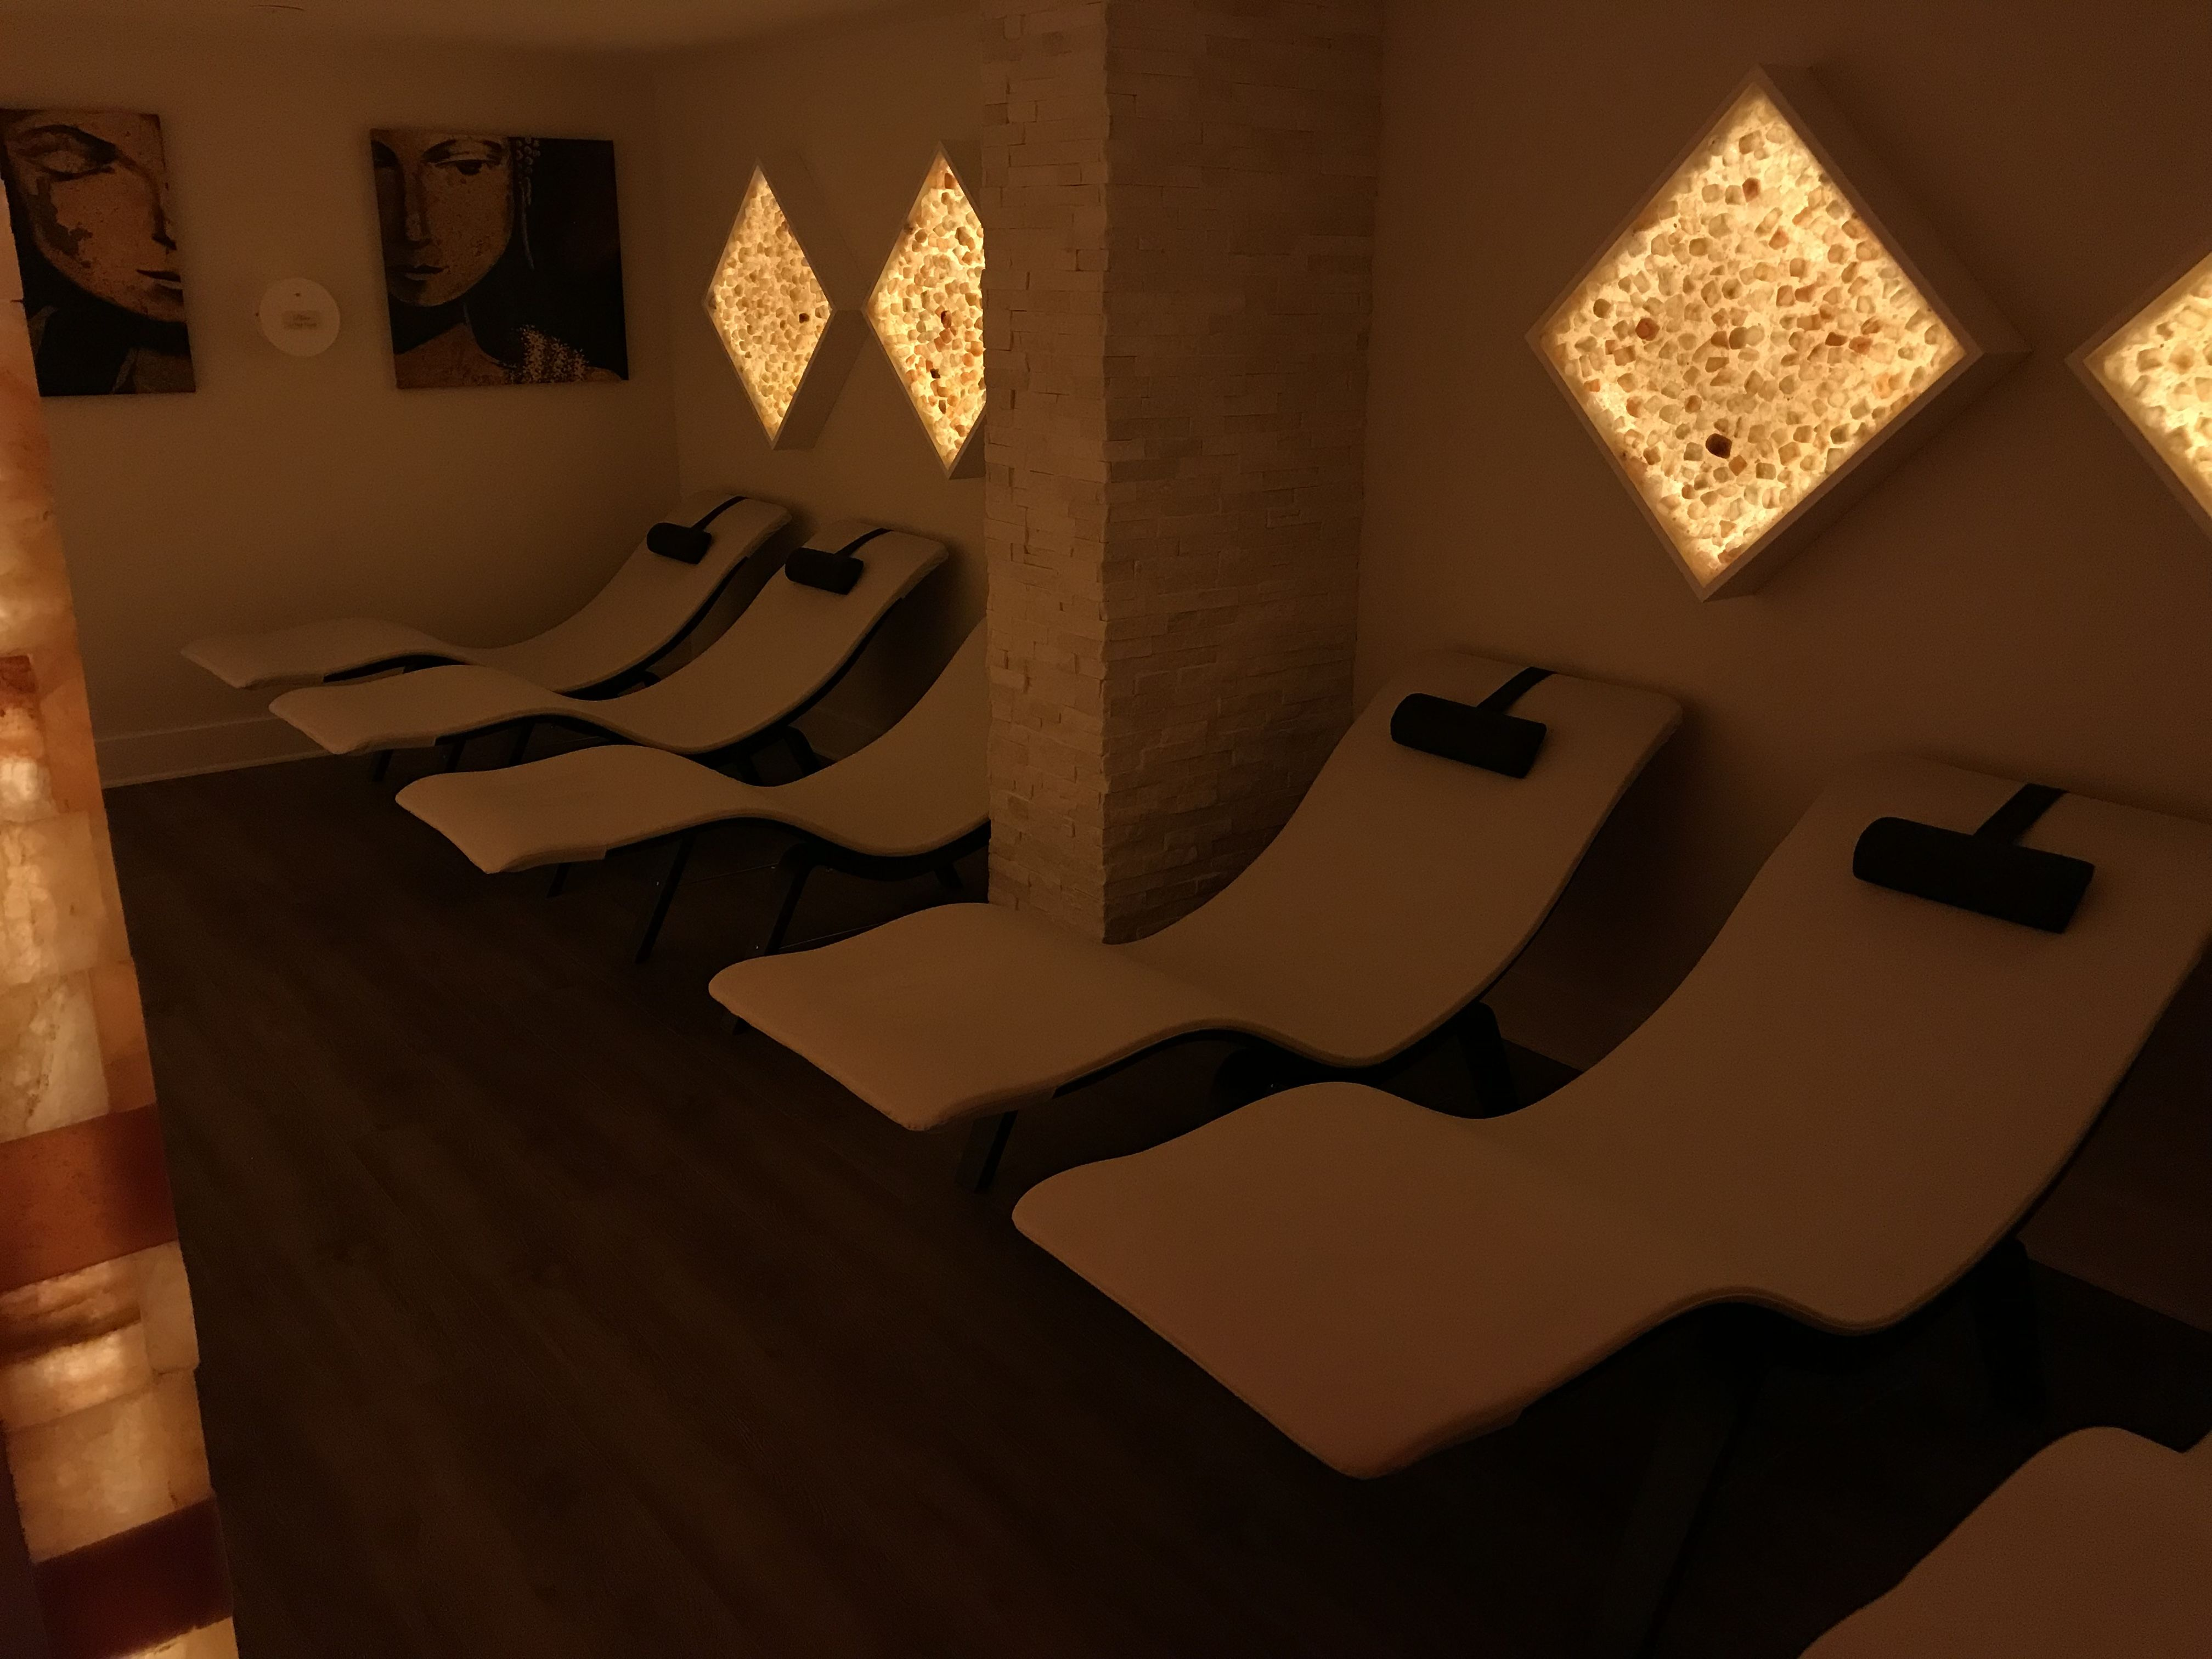 Relaxation area with zero gravity loungers in the salt